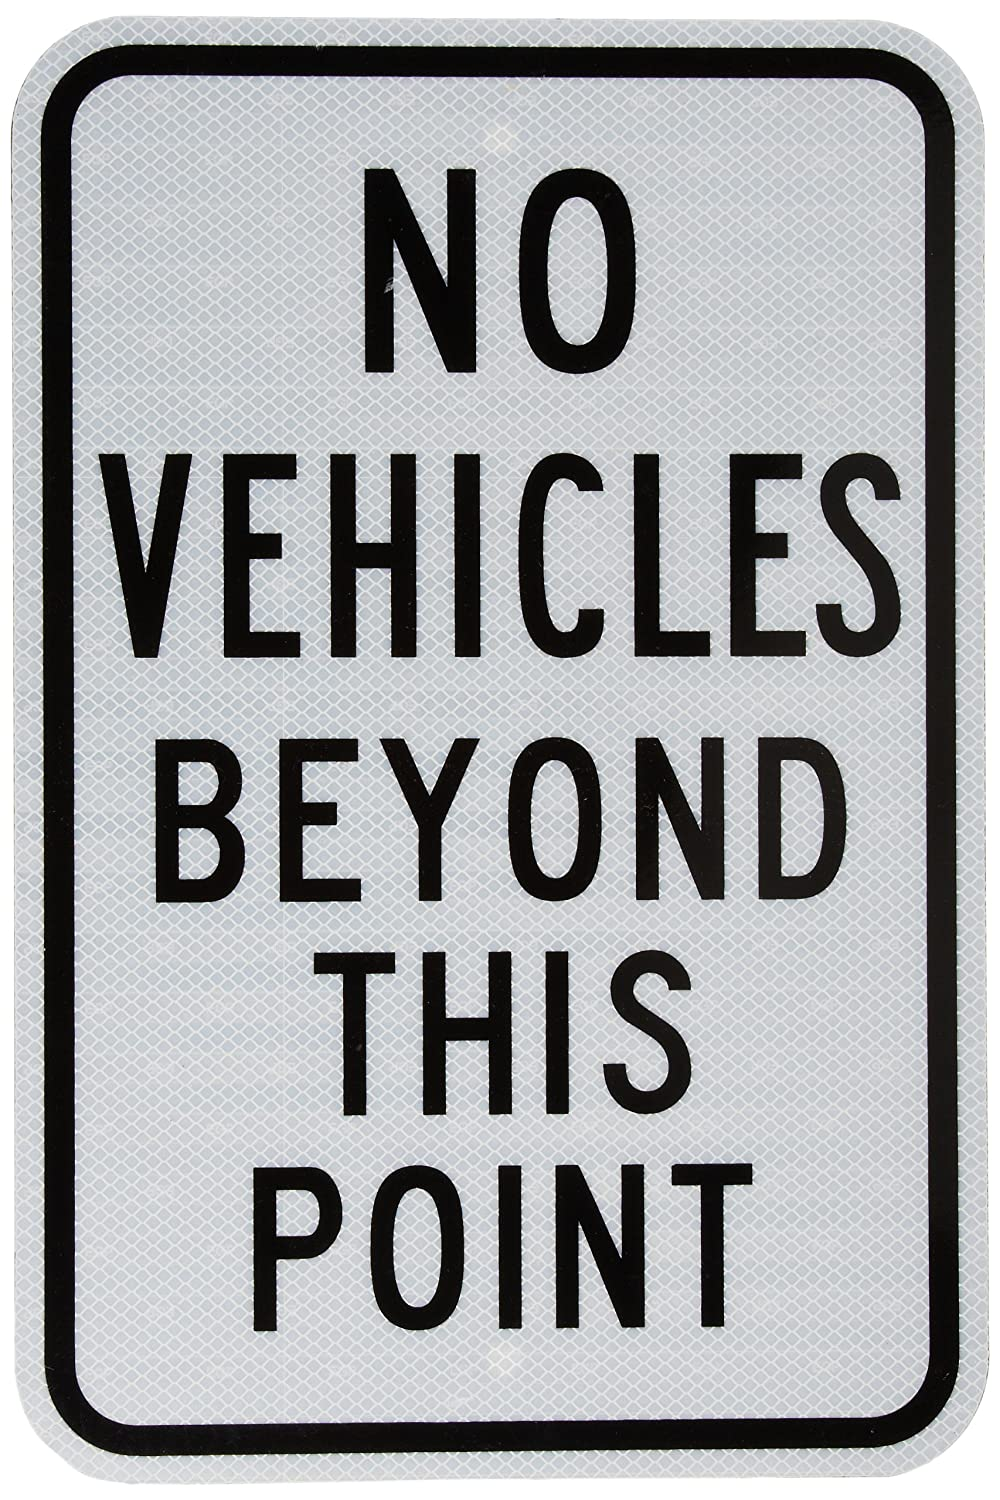 Tapco D-21 Engineer Grade Prismatic Rectangular Lane Control Sign, Legend NO VEHICLES BEYOND THIS POINT, 12 Width x 18 Height, Aluminum, Black on White TAPCO Safety 373-00337